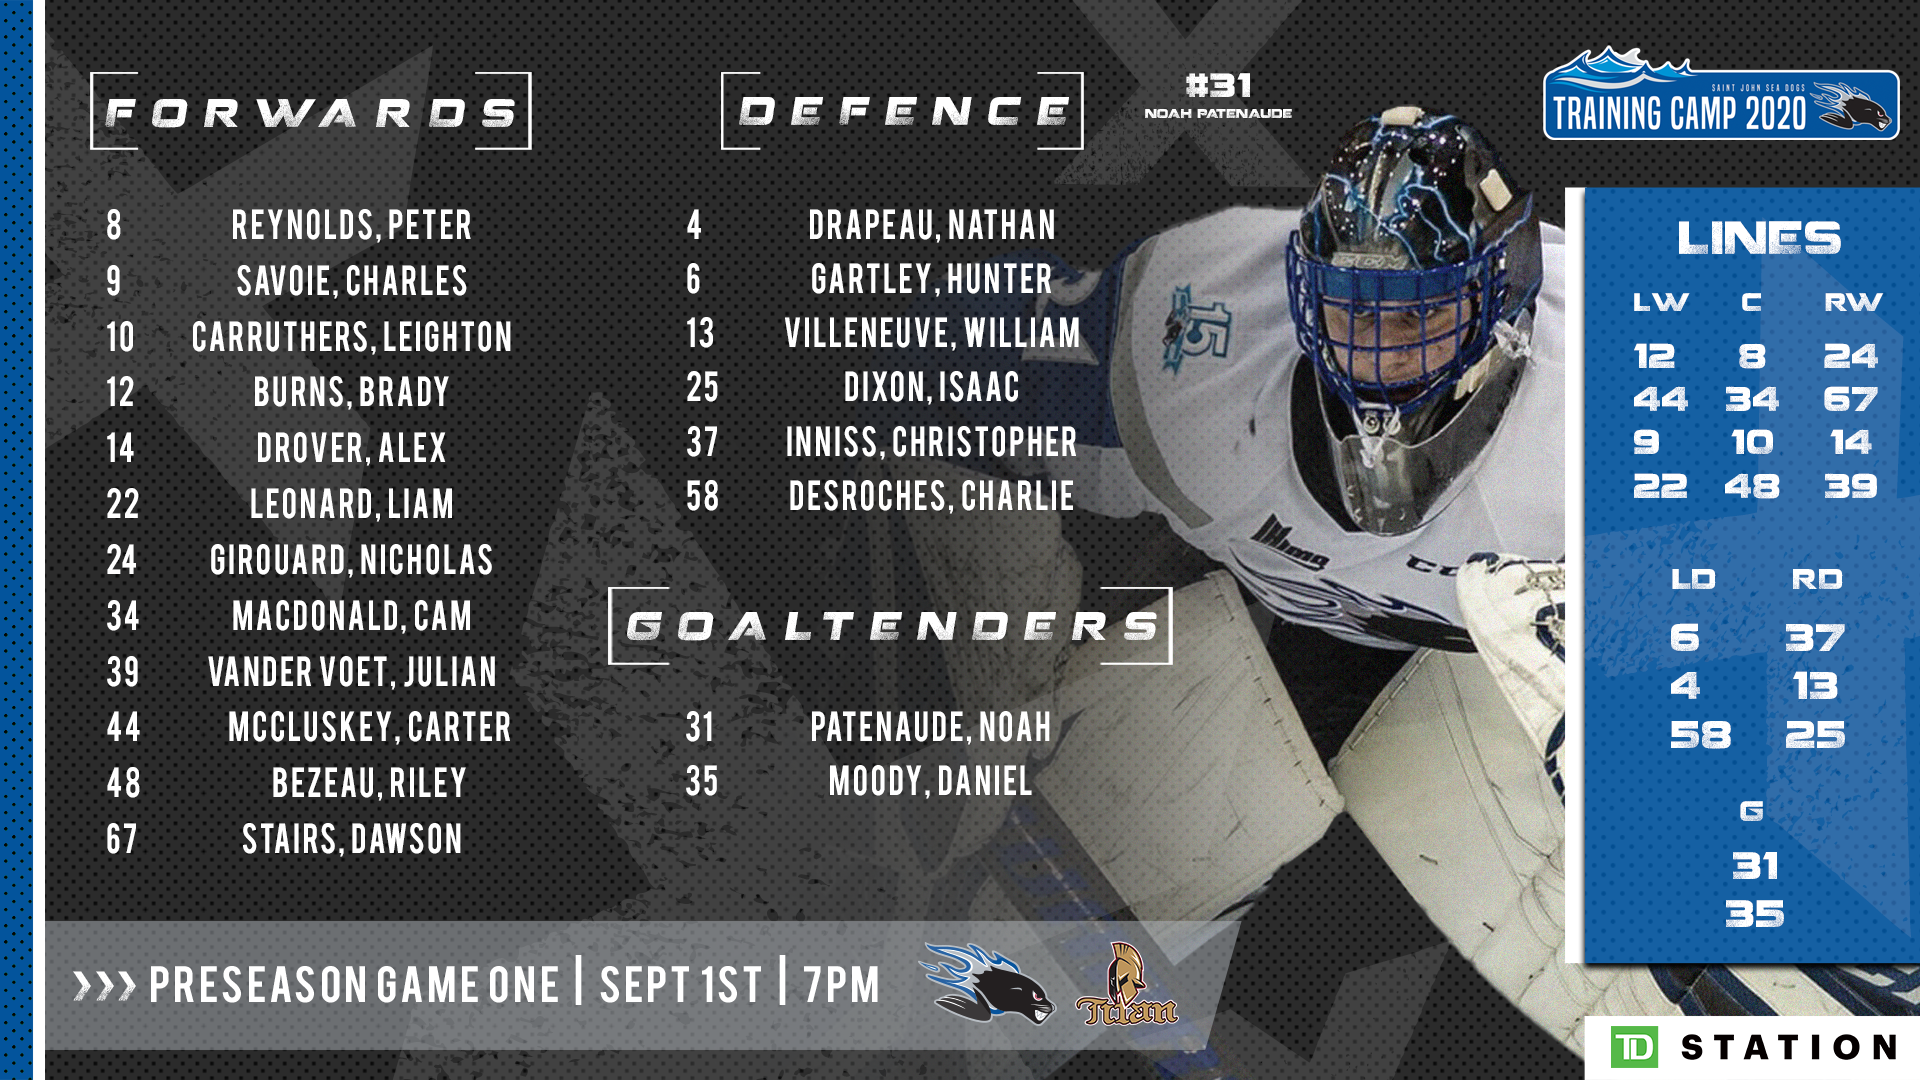 Preseason Lineup Game One